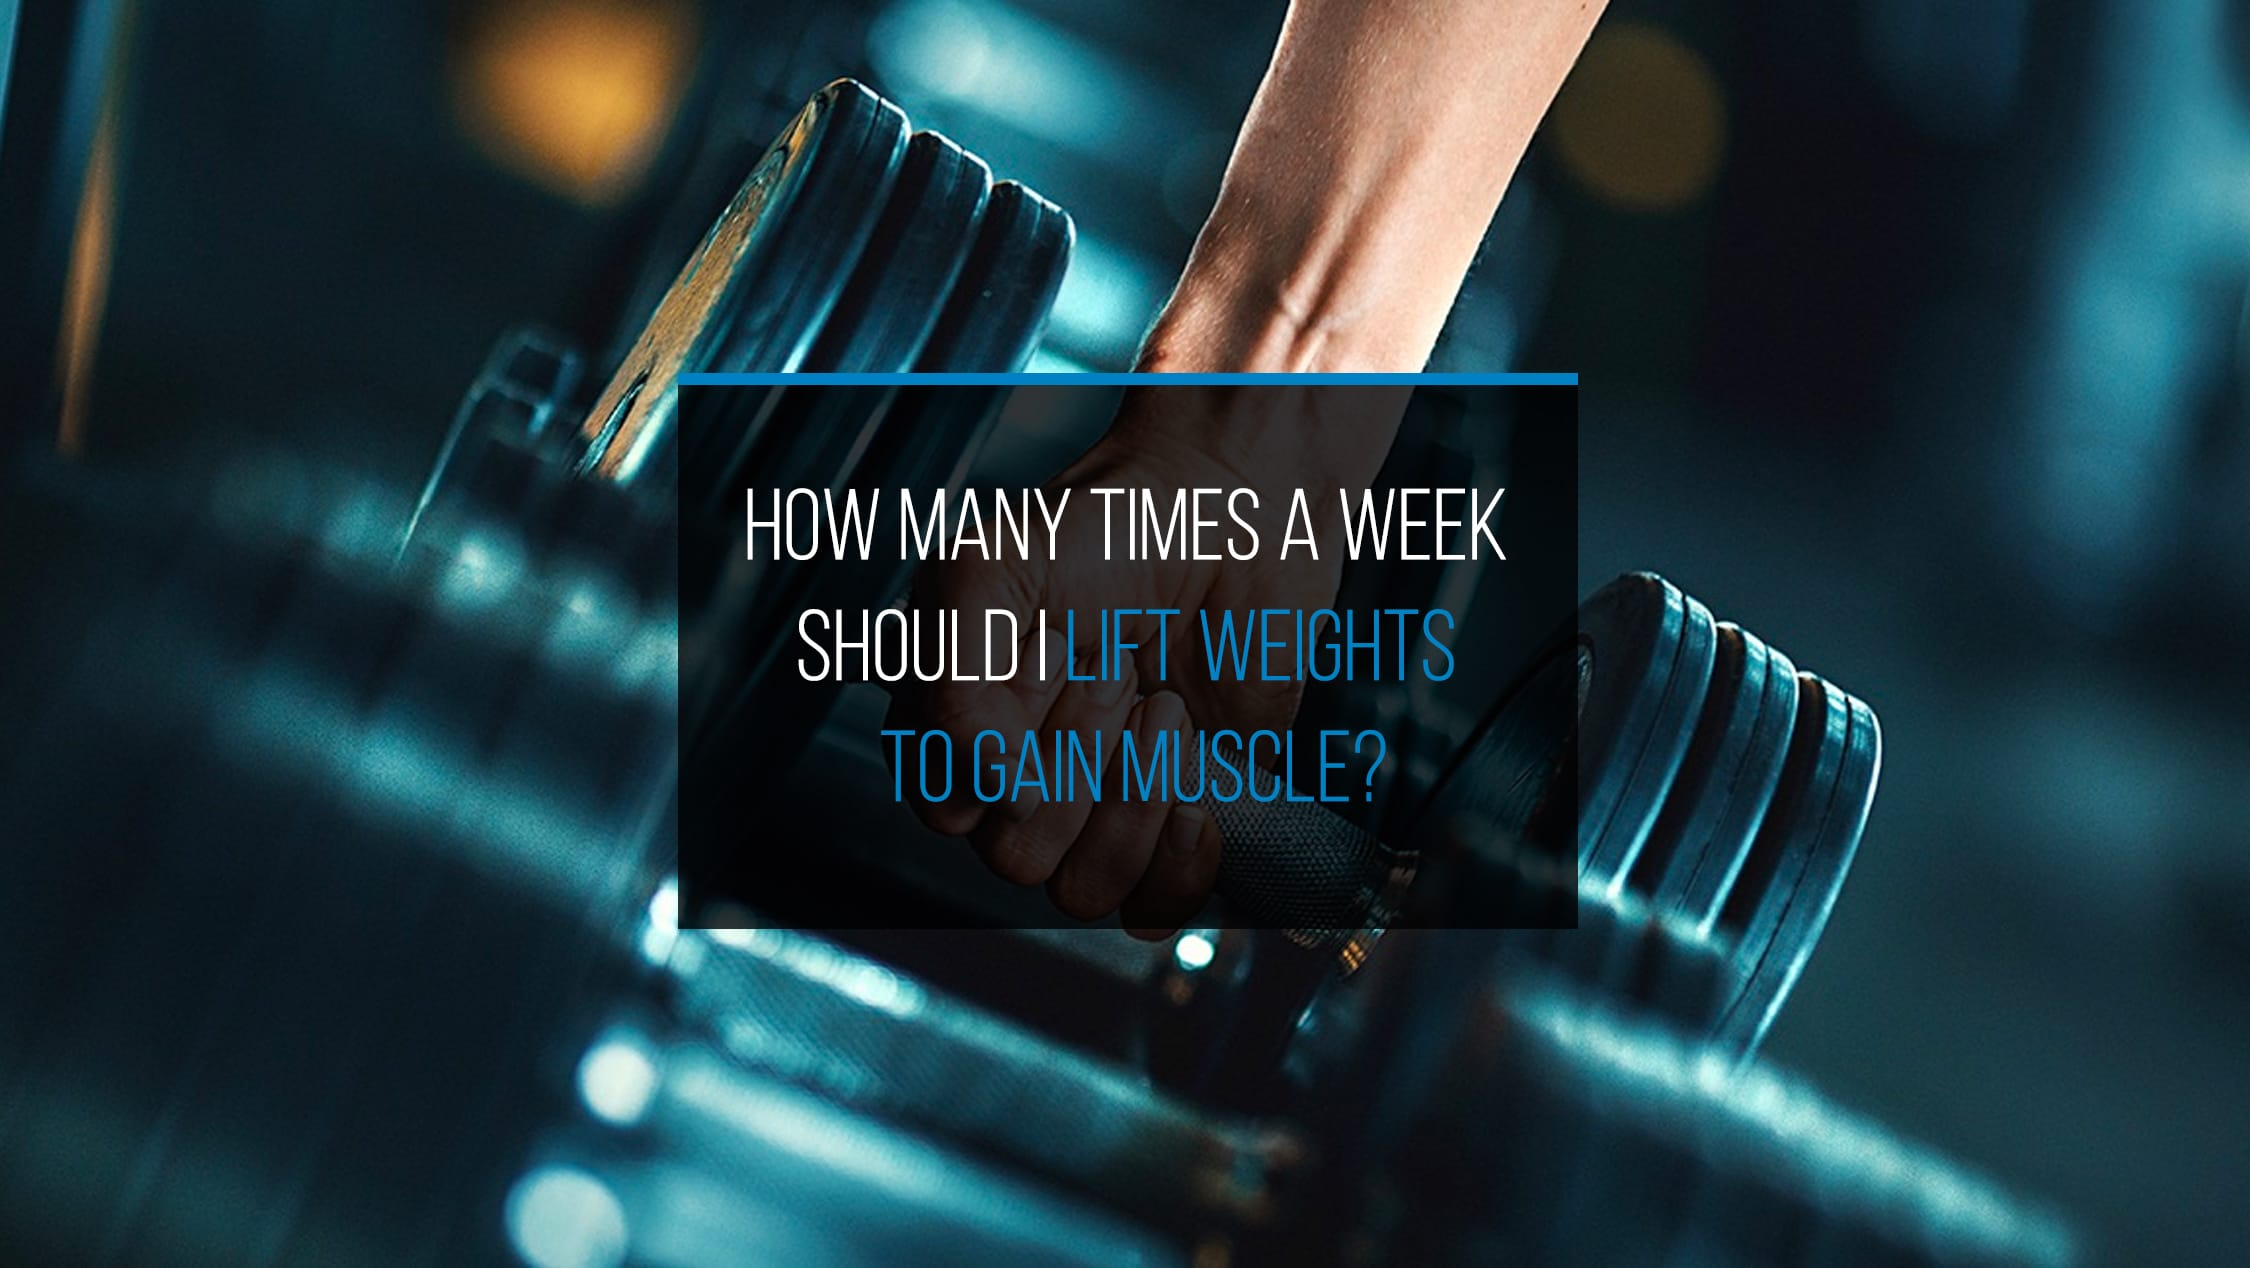 Lift Weights to Gain Muscle